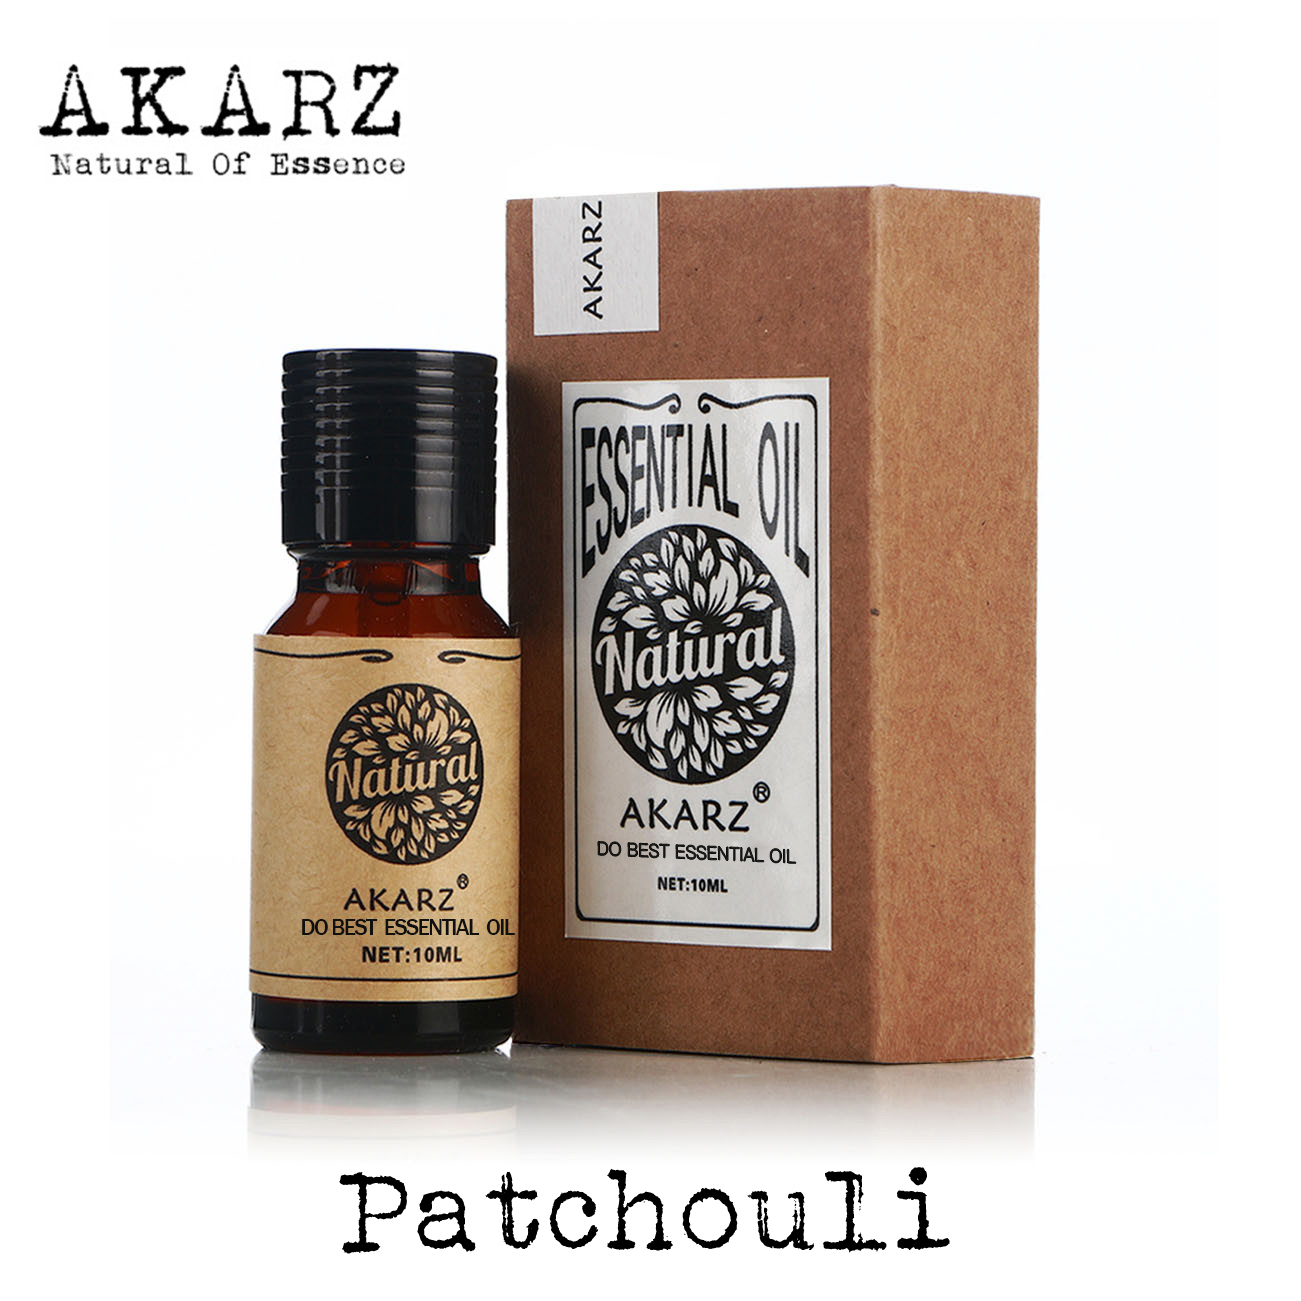 AKARZ Famous Brand Natural Patchouli Essential Oil Deep Cleanliness Moisture Relieve Headache Cleaning Pores Patchouli OIL